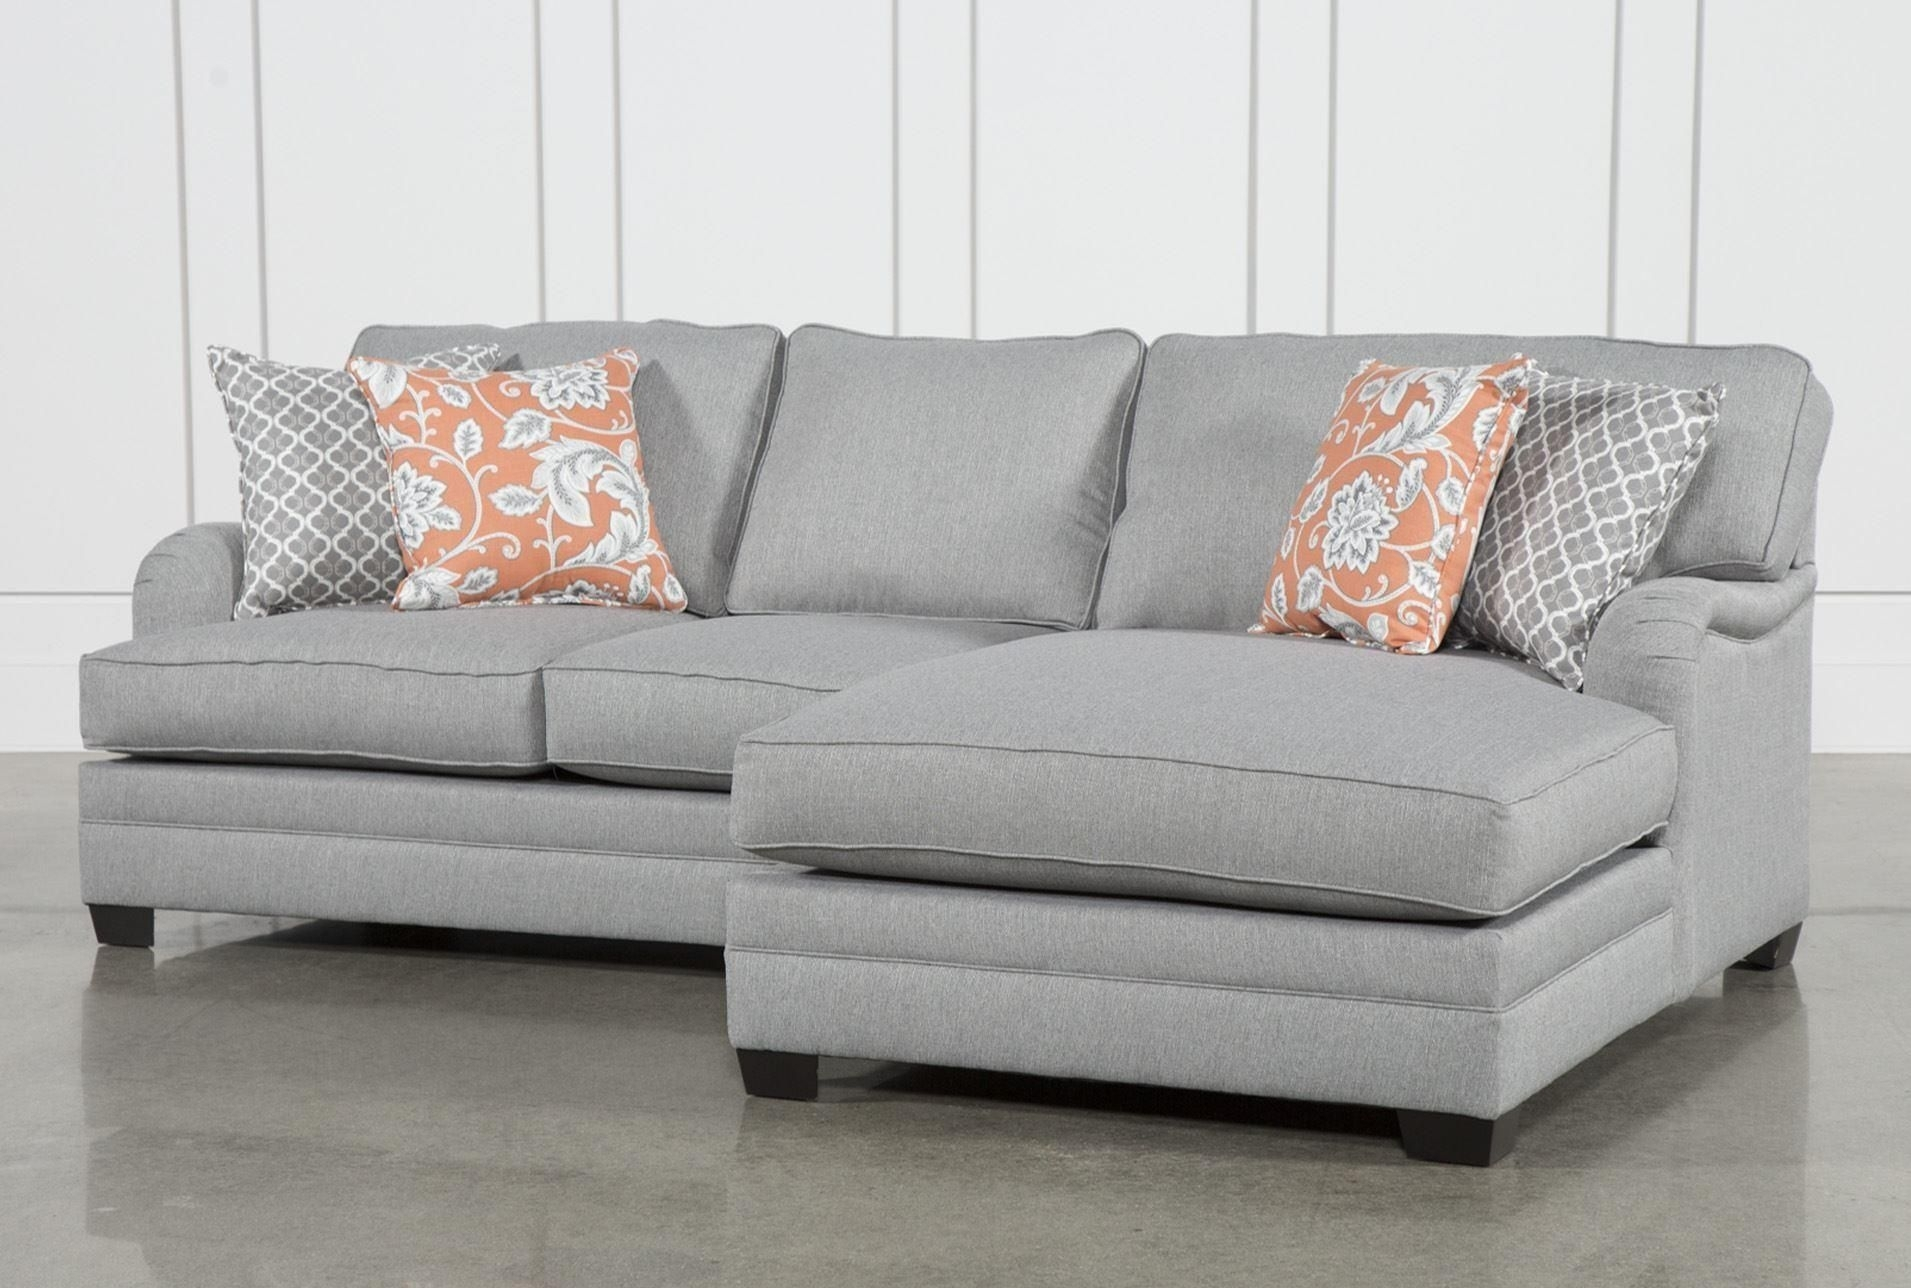 Marissa 2 Piece Sectional W/raf Chaise | Oakdell House | Pinterest For Mcculla Sofa Sectionals With Reversible Chaise (View 5 of 25)